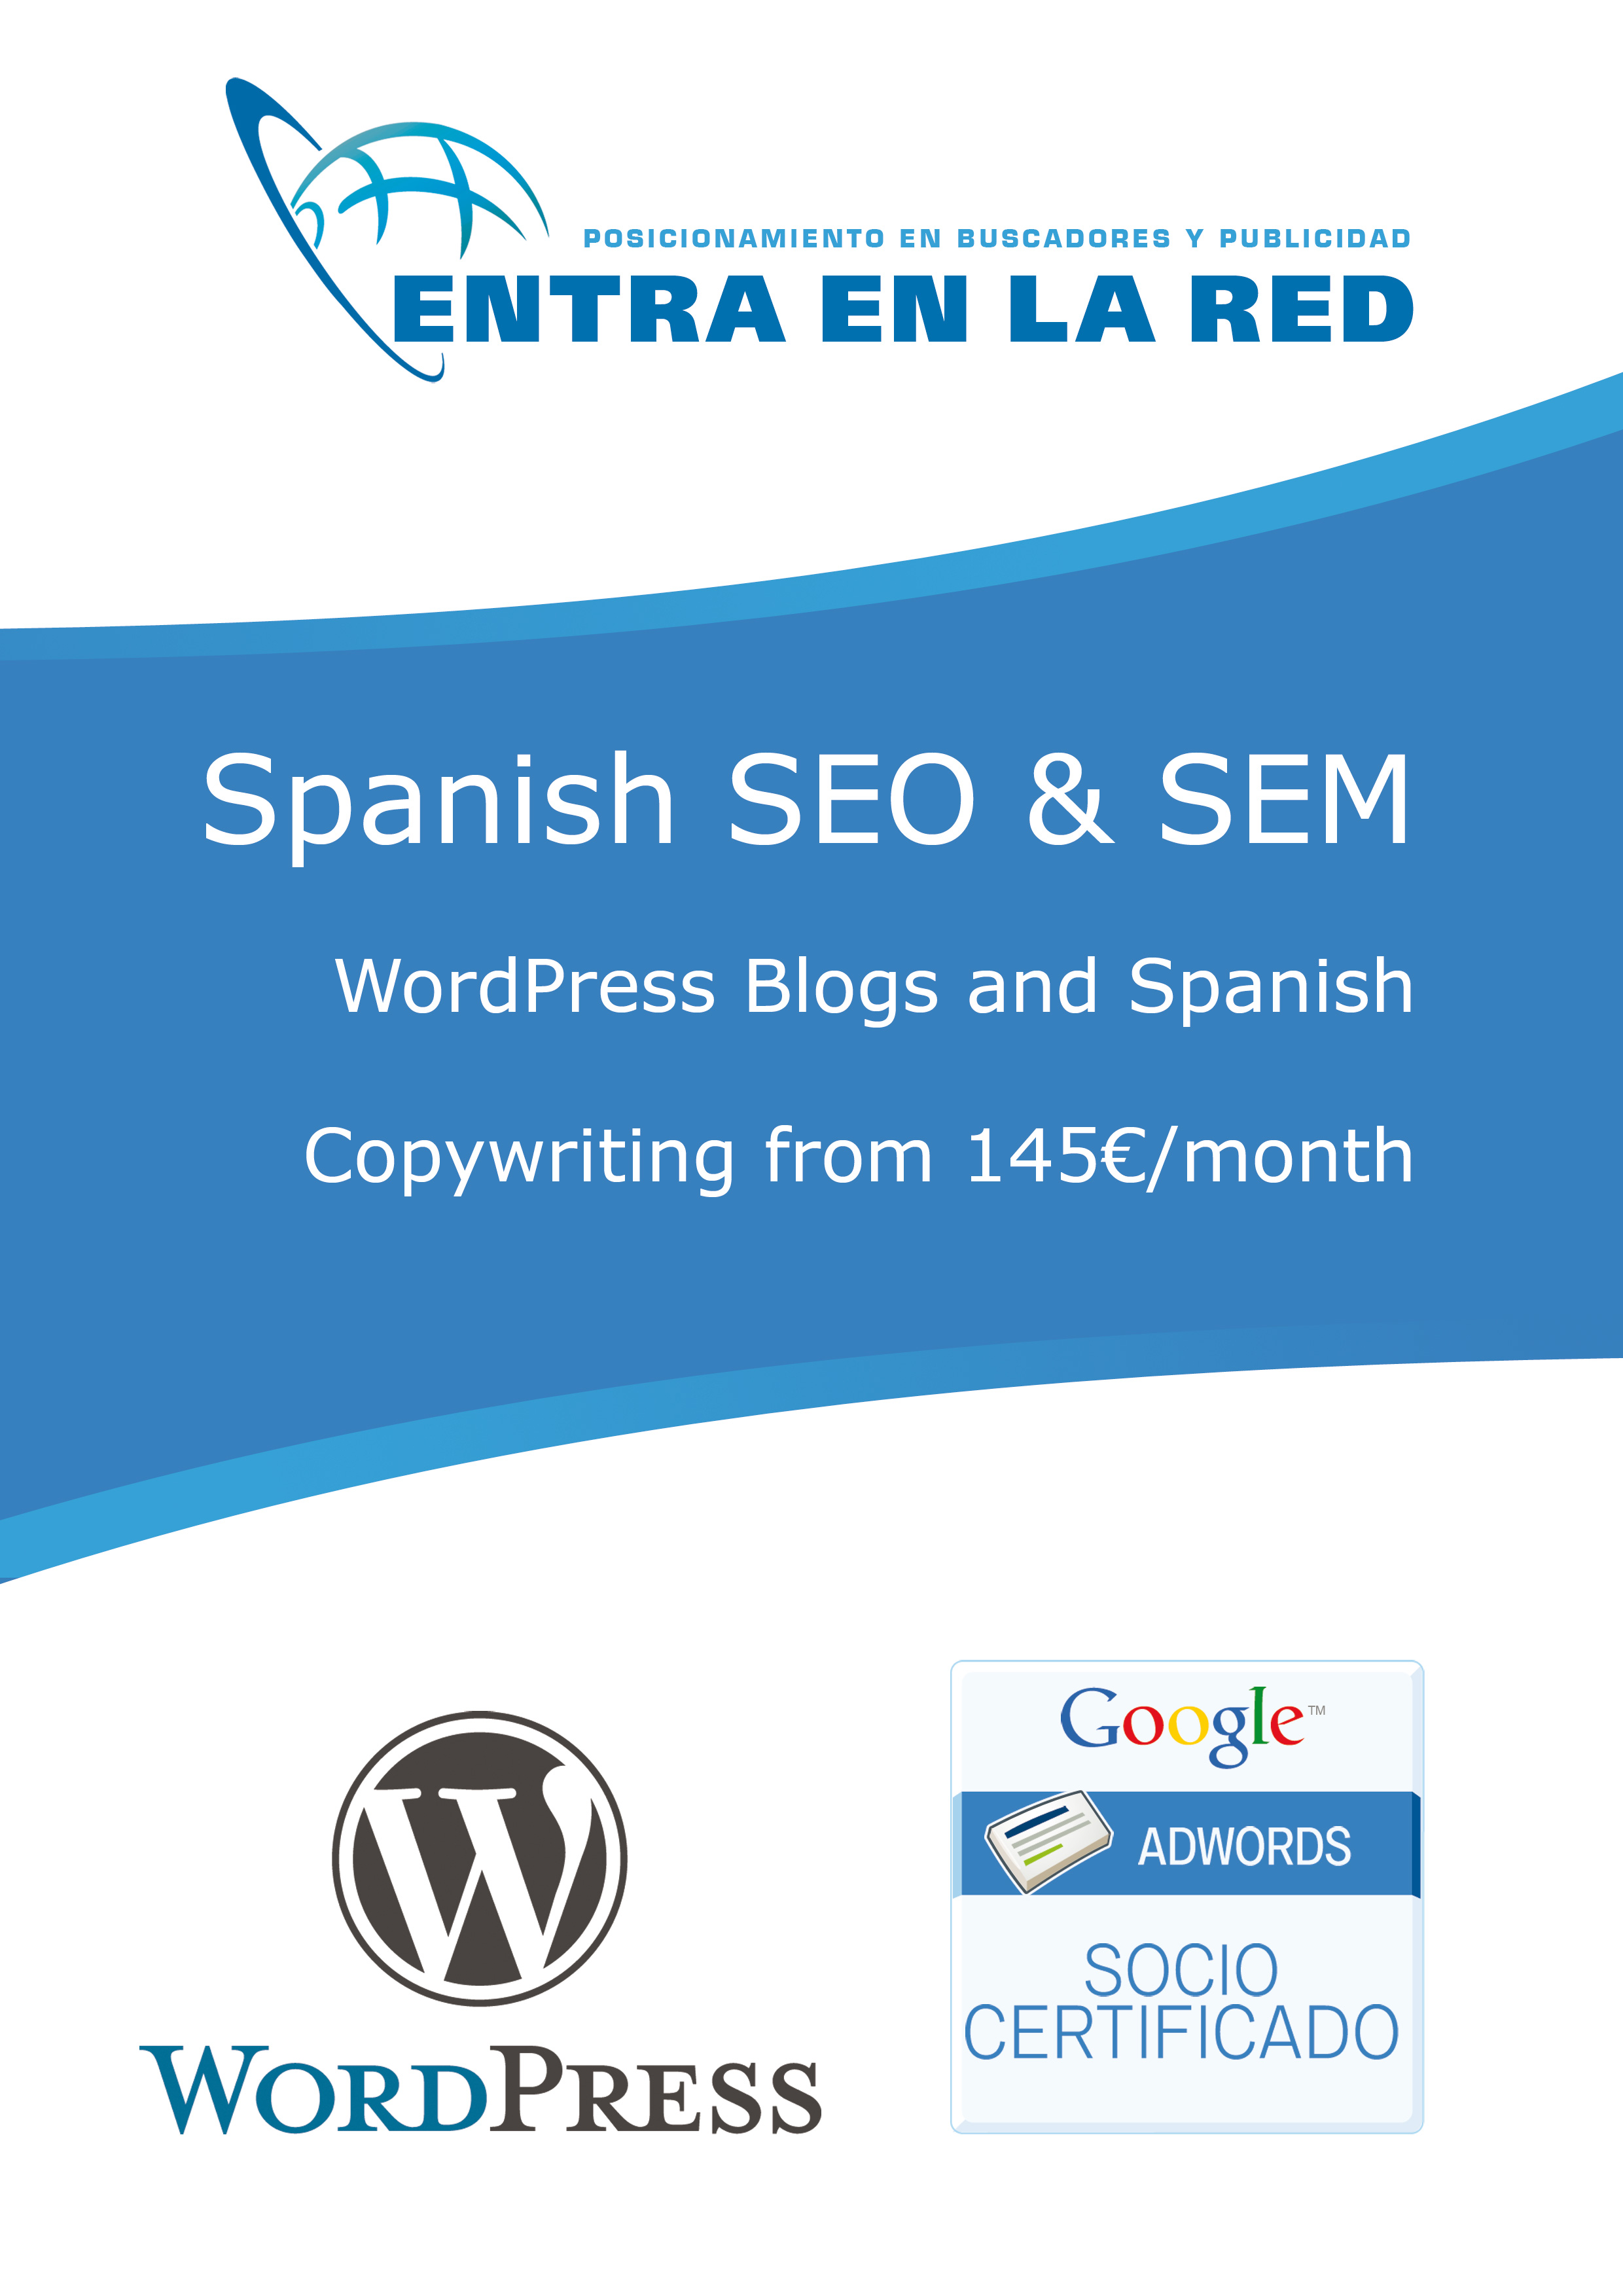 Spanish seo adwords certified partner spanish sem and wordpress blogs for seo 1betcityfo Image collections